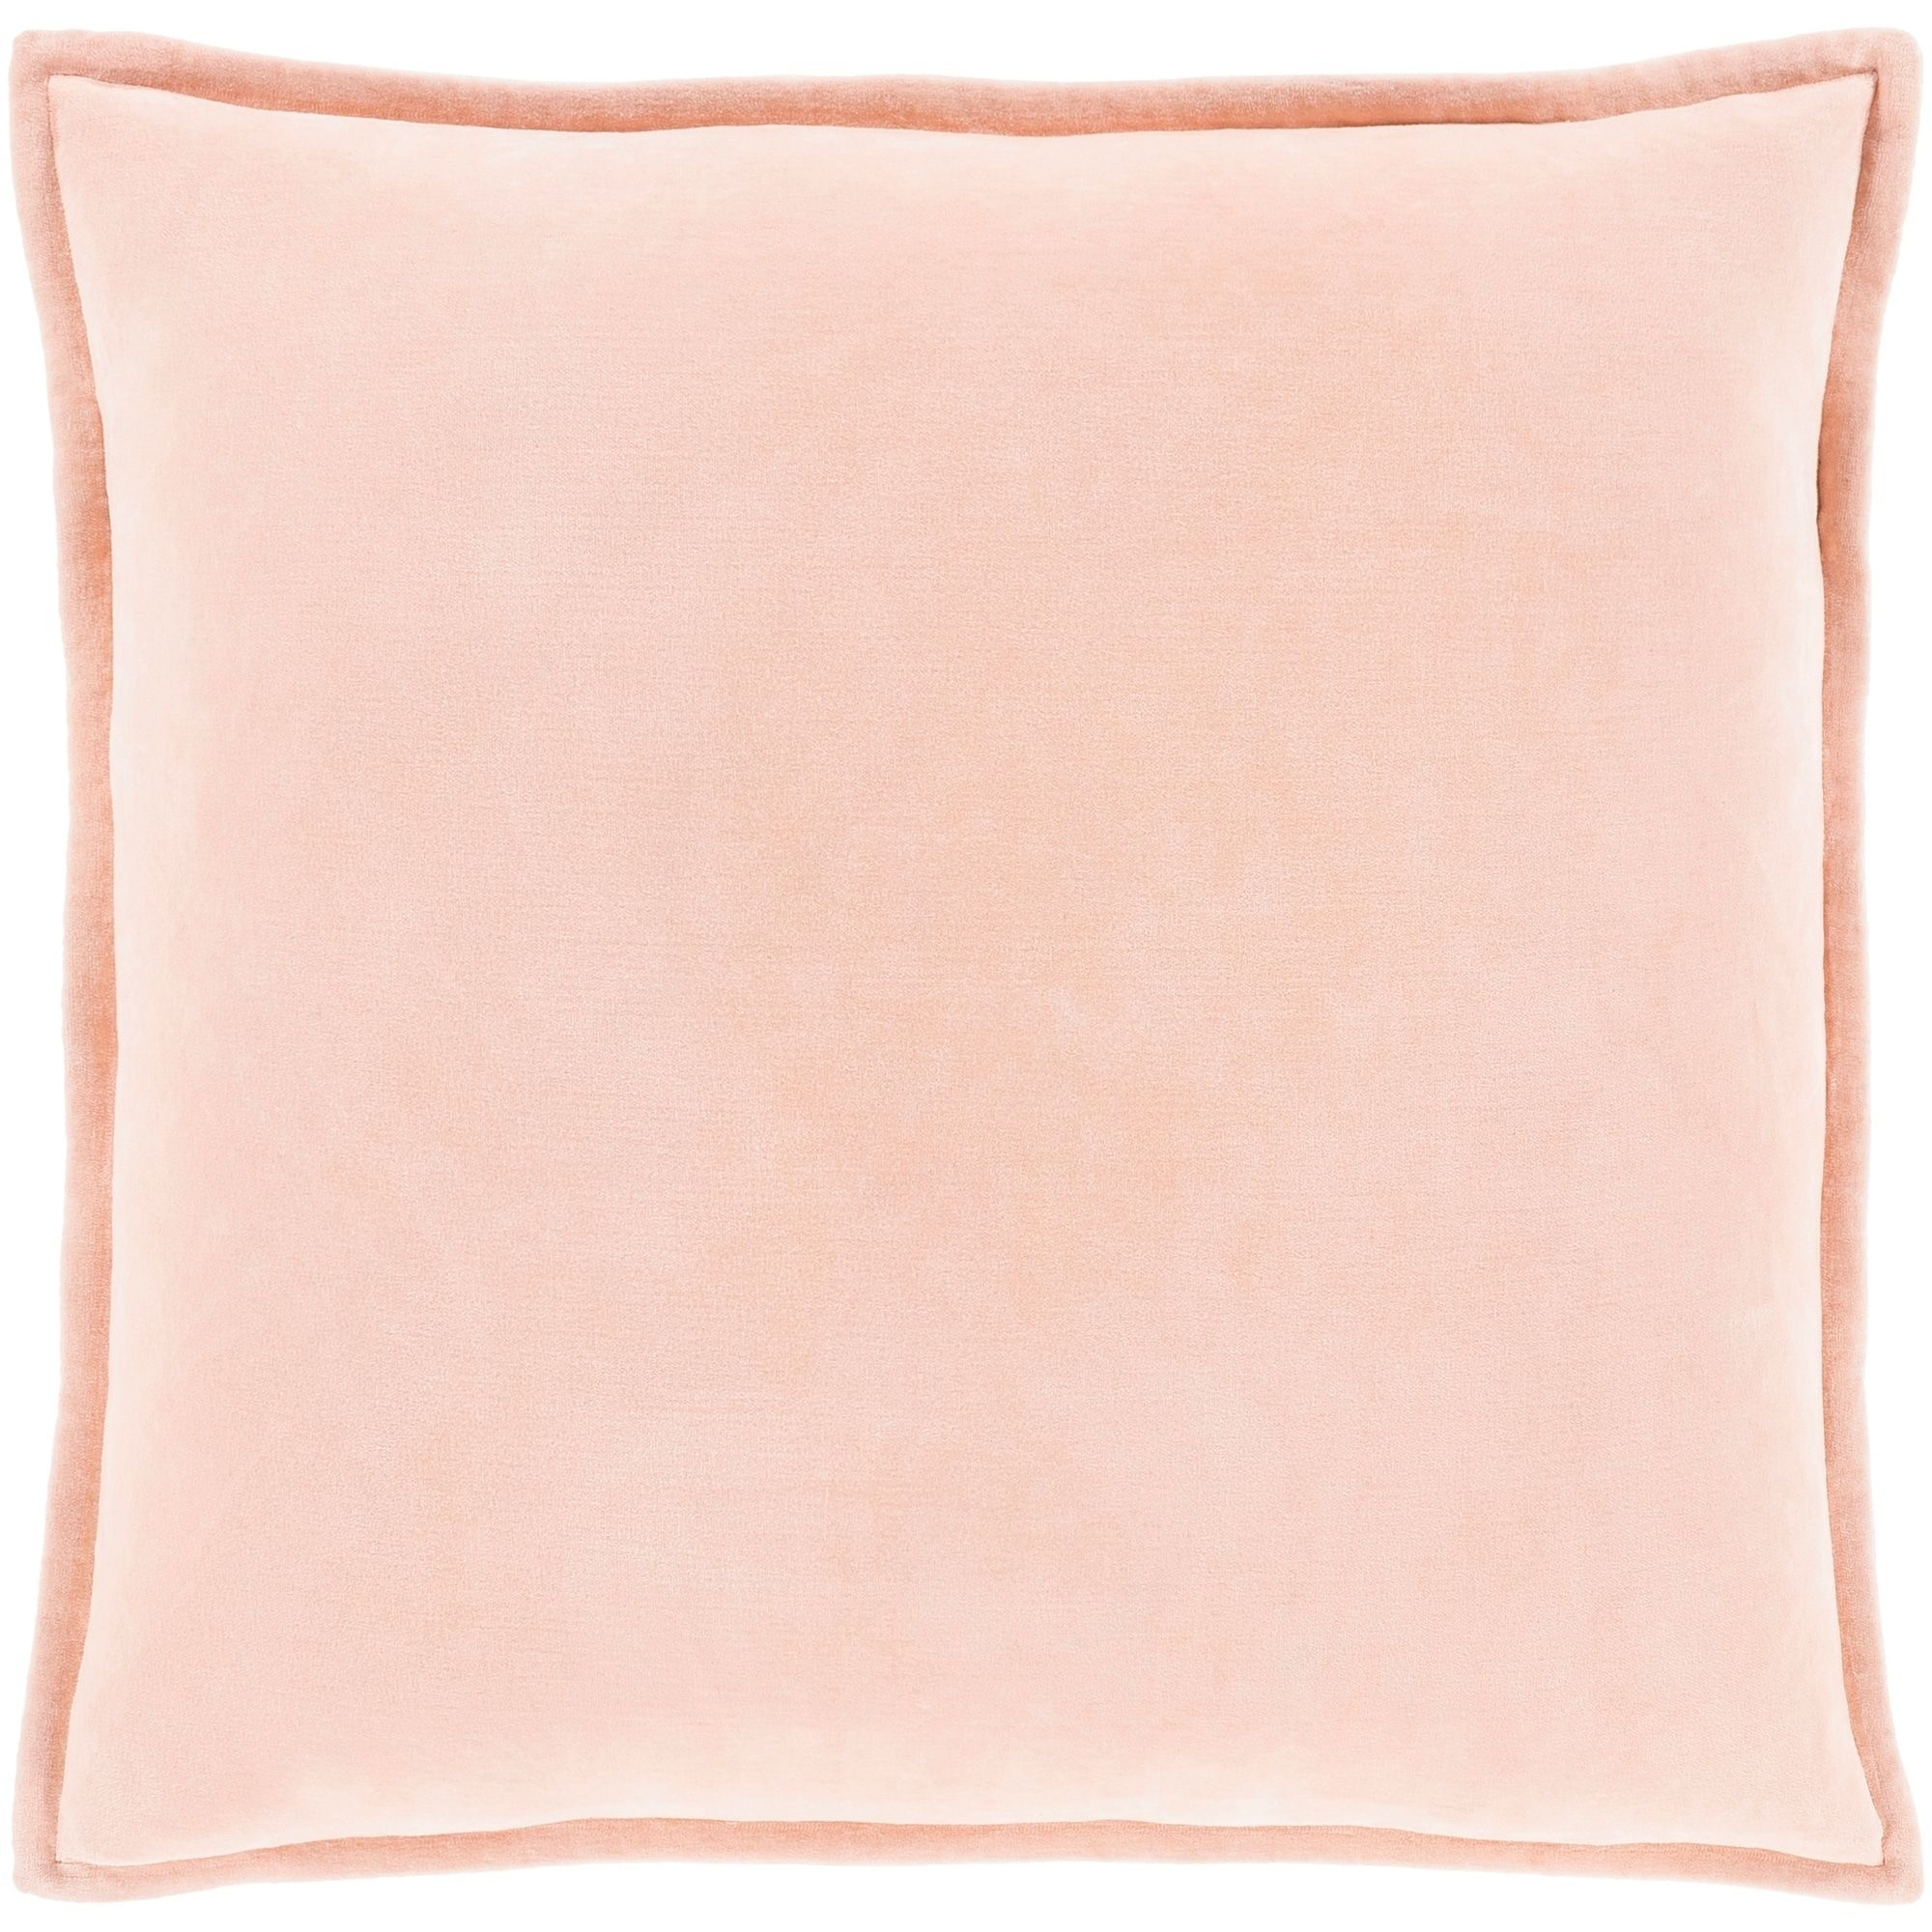 Vianne Solid Peach Pillow Feather Down Fill 20 X 20